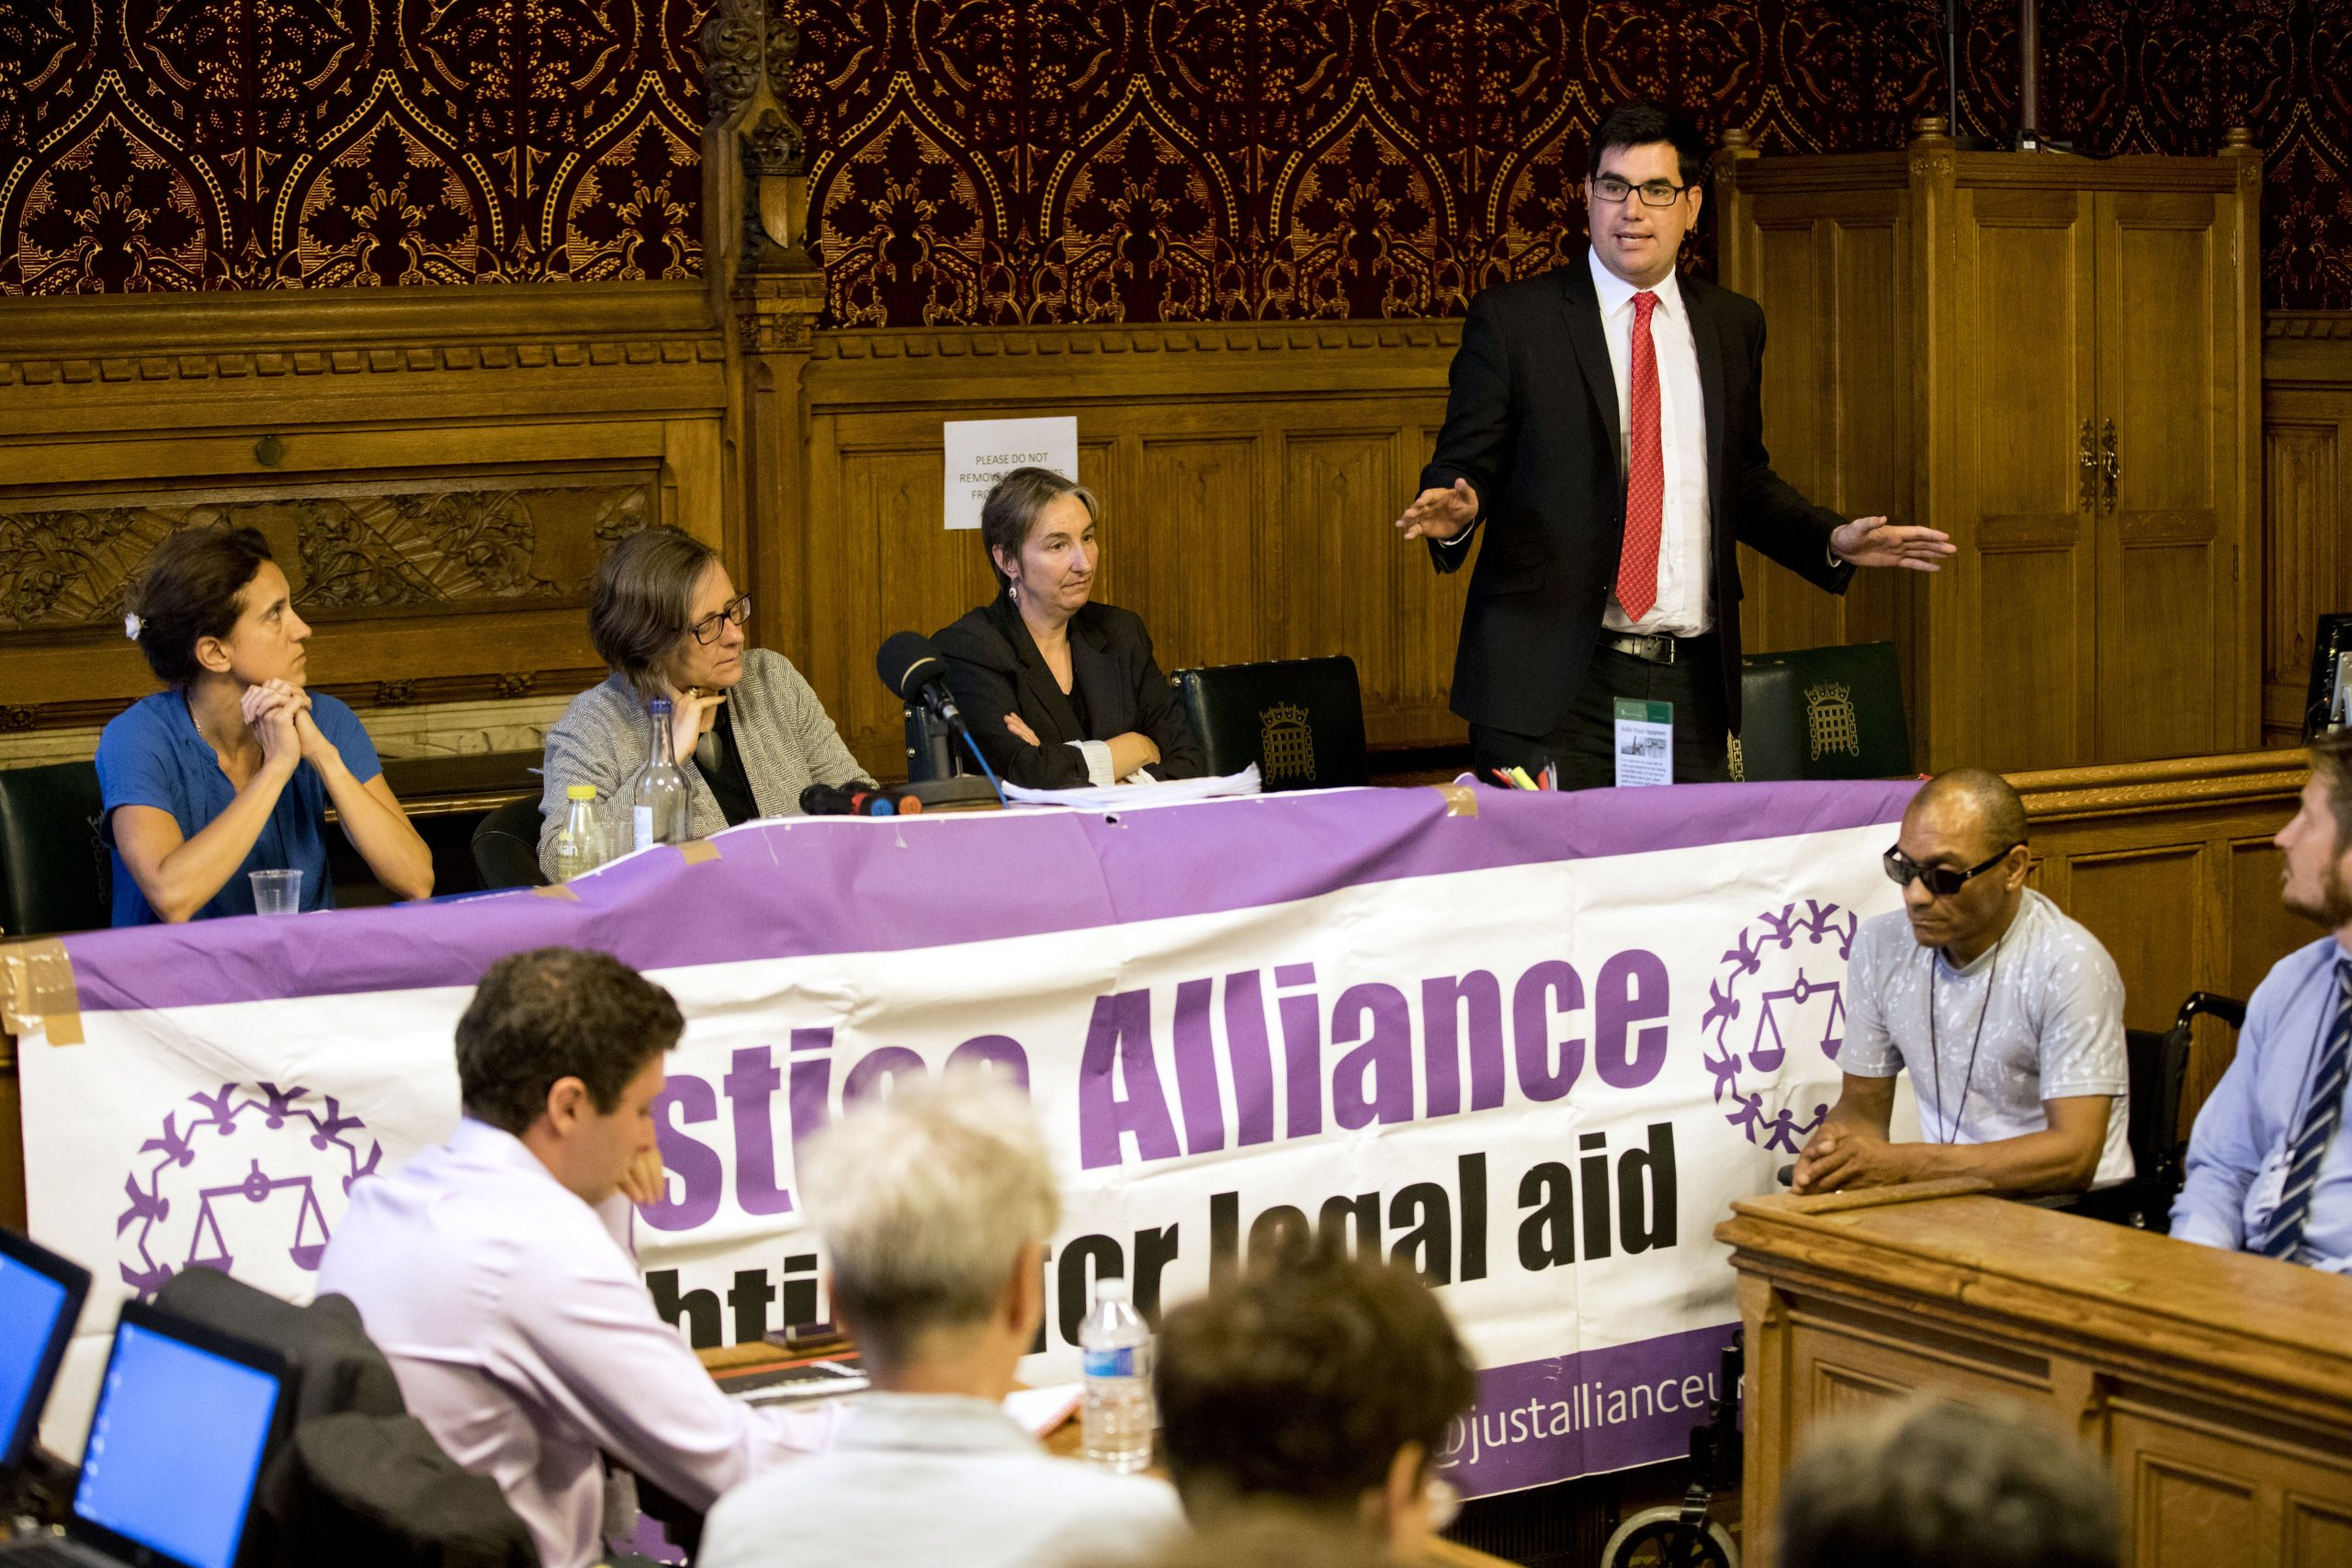 Labour vows to reinstate legal aid for benefit apeals